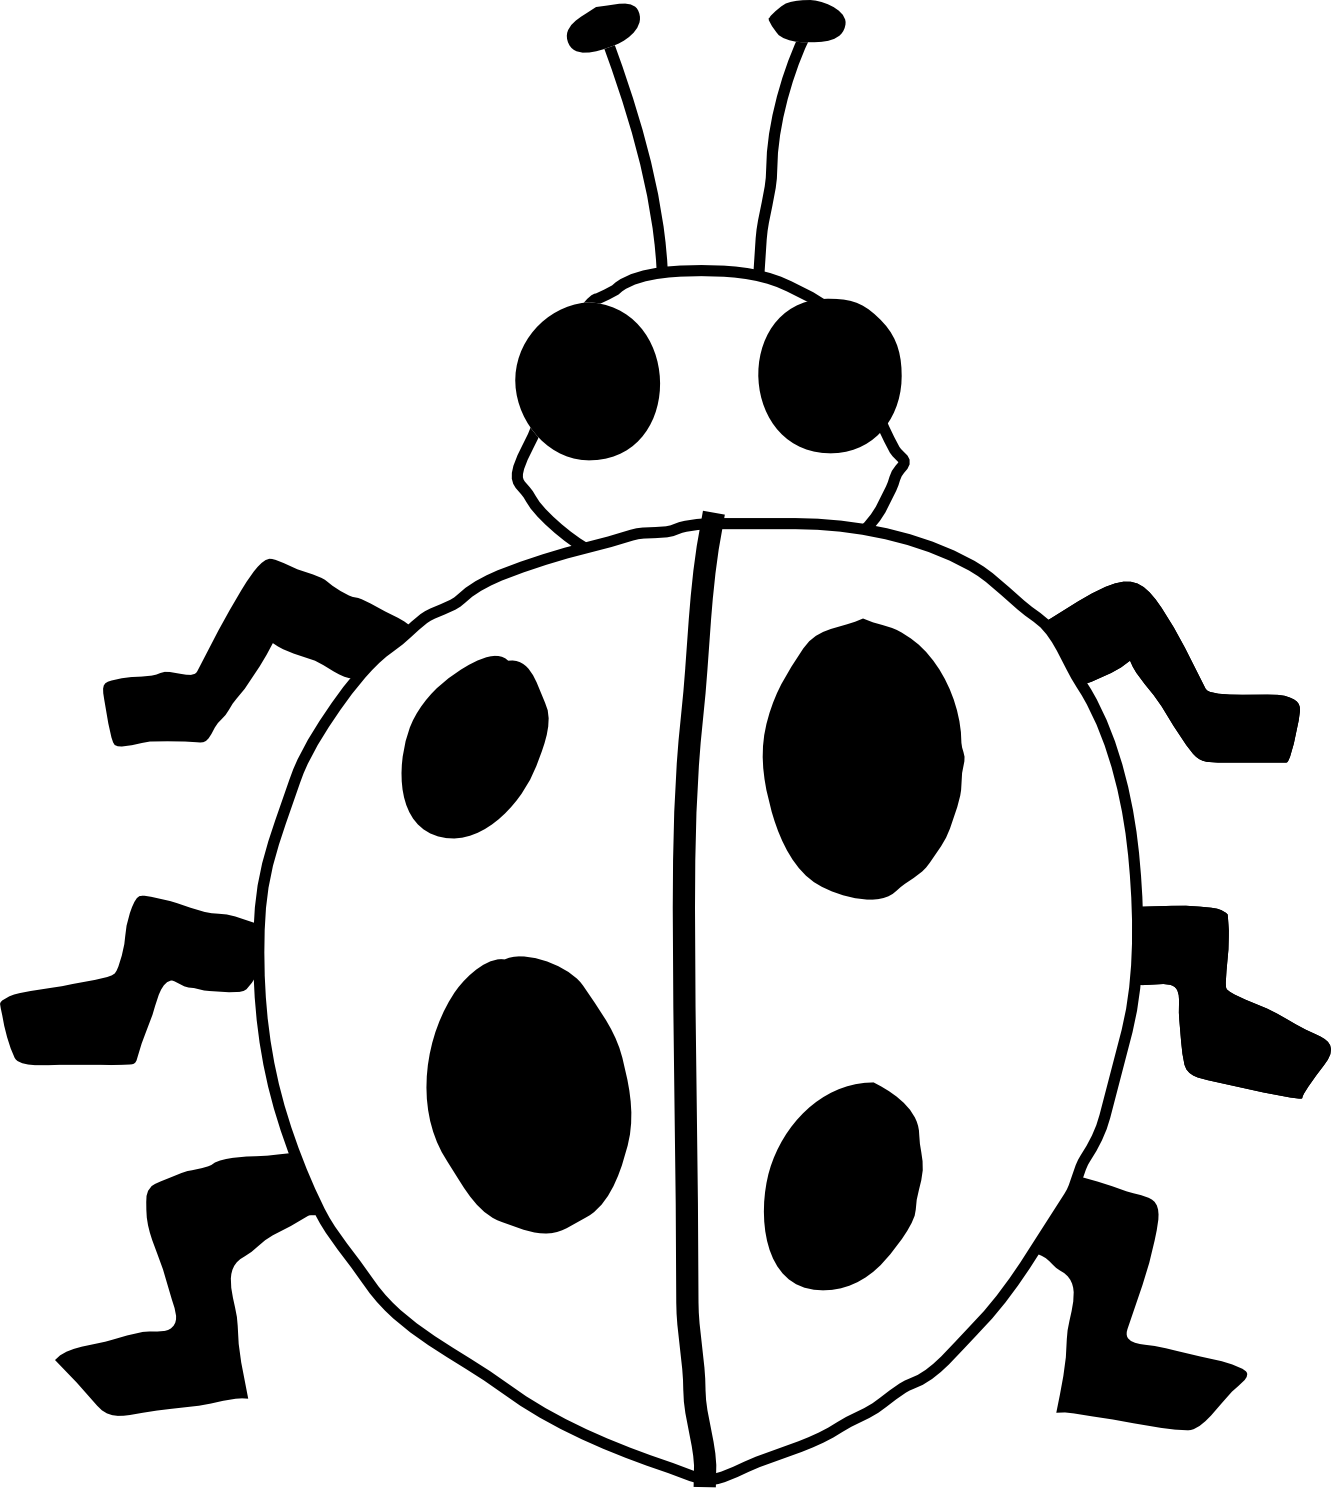 Cute insect clipart black and white.